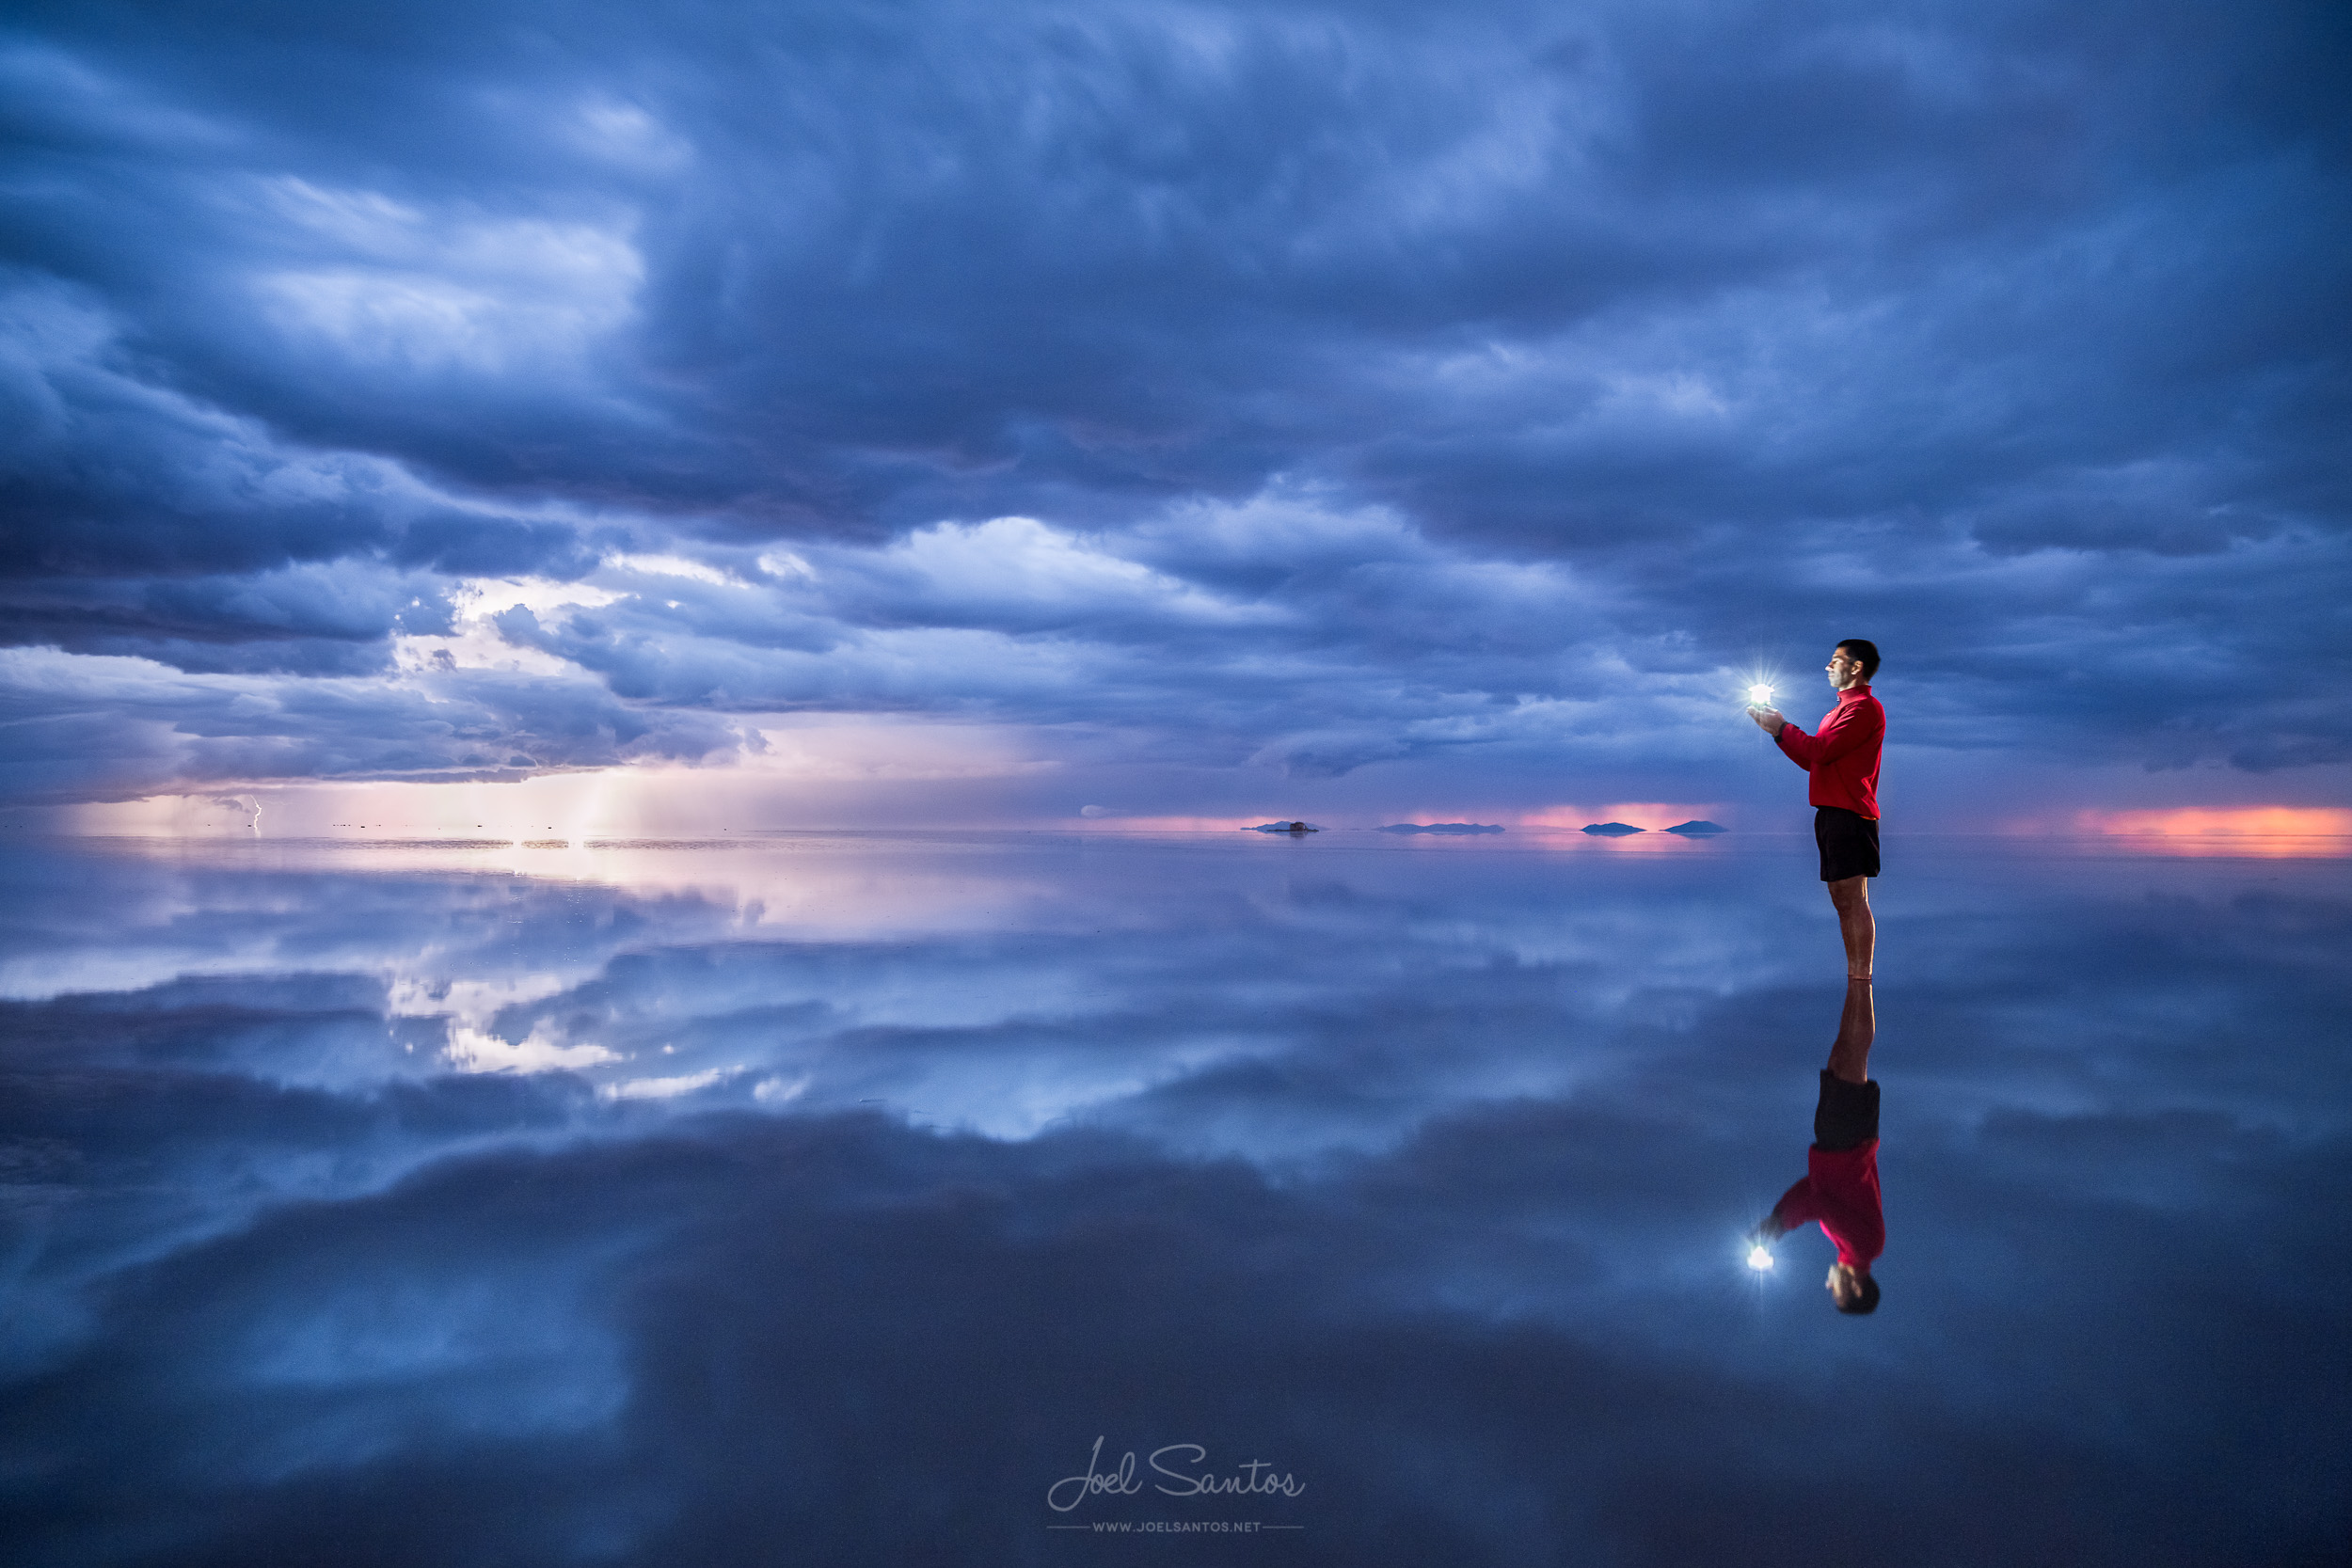 Storm and reflection, Uyuni salt flats (Salar), Altiplano, Boliv